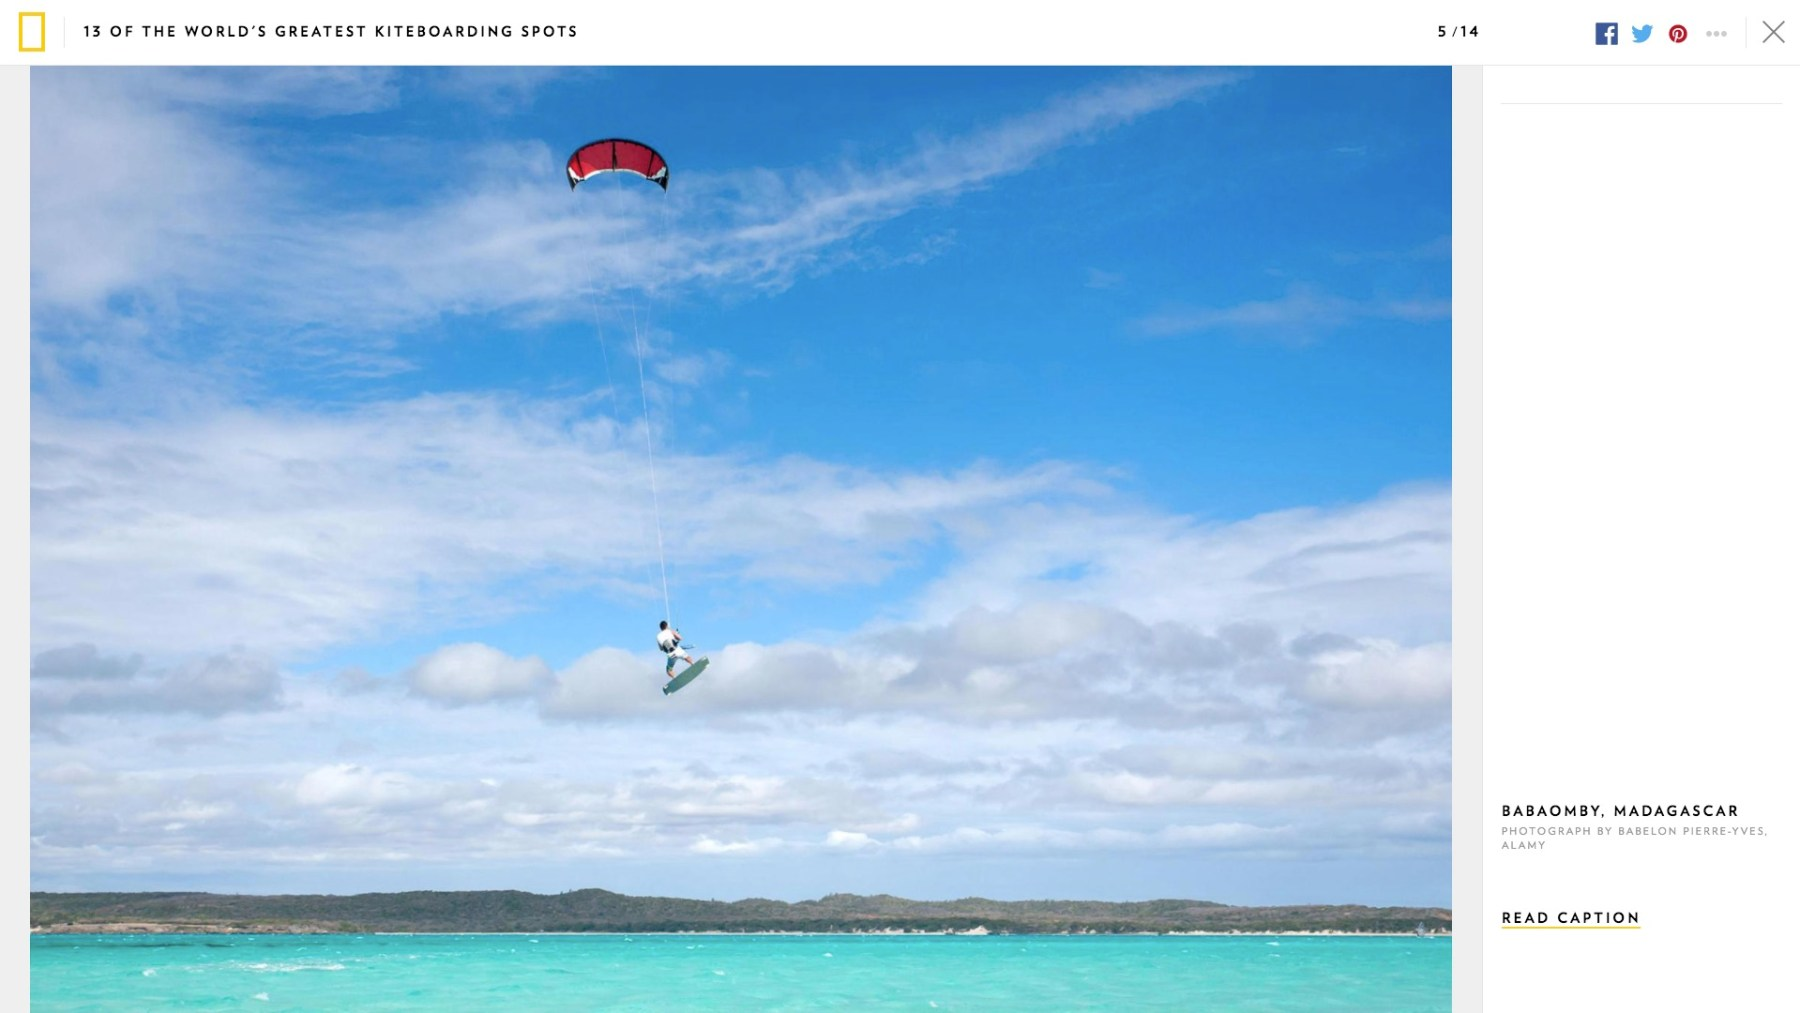 National Geographic Kitesurf à Babaomby. Photo Pierre-Yves Babelon.